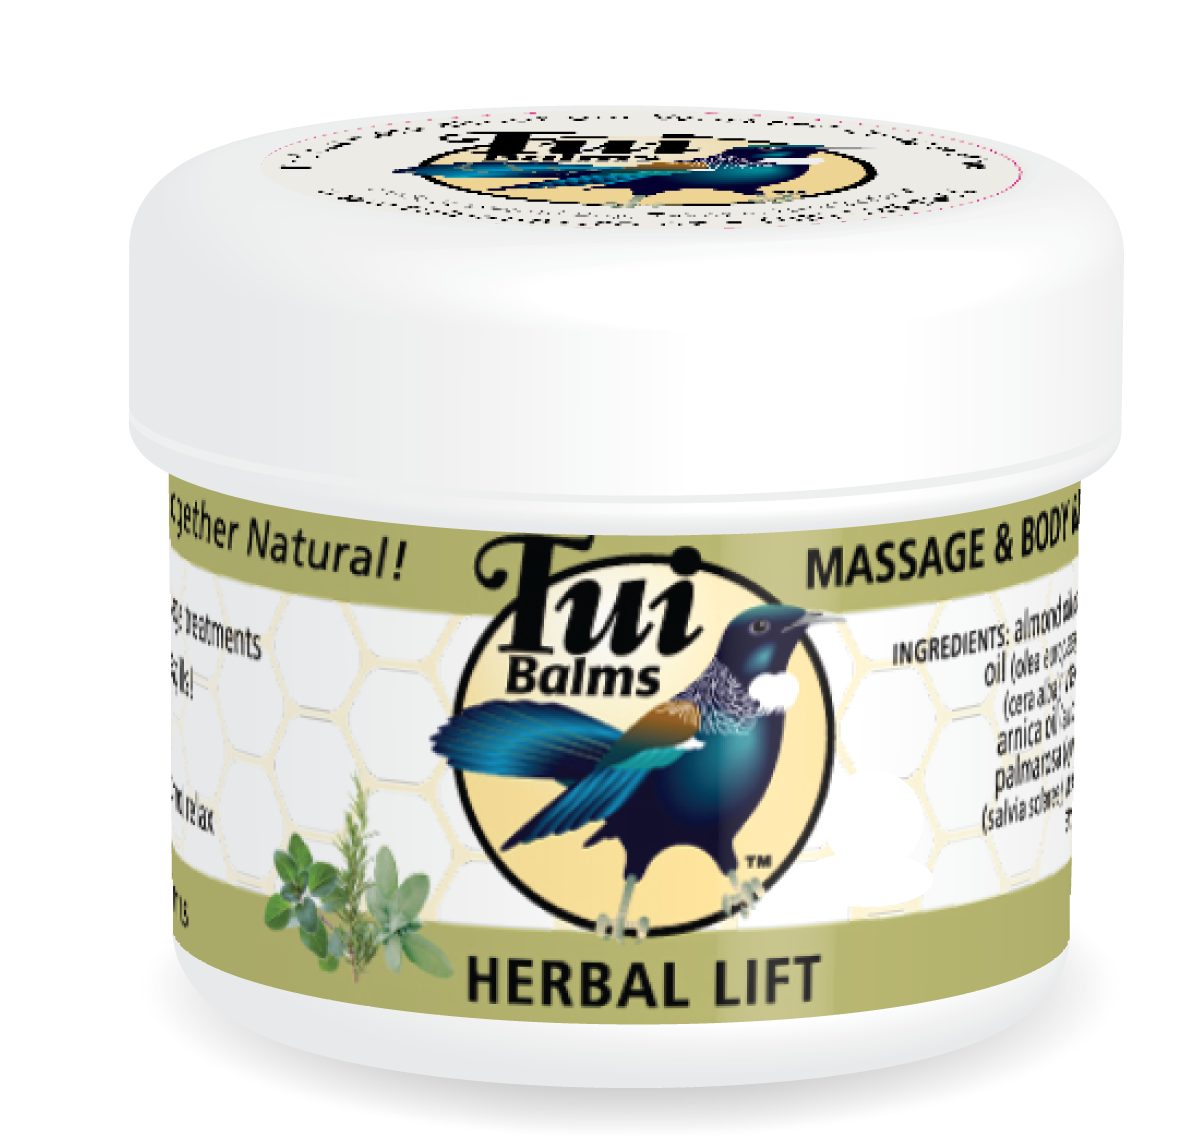 Massage & Body Balm HERBAL LIFT